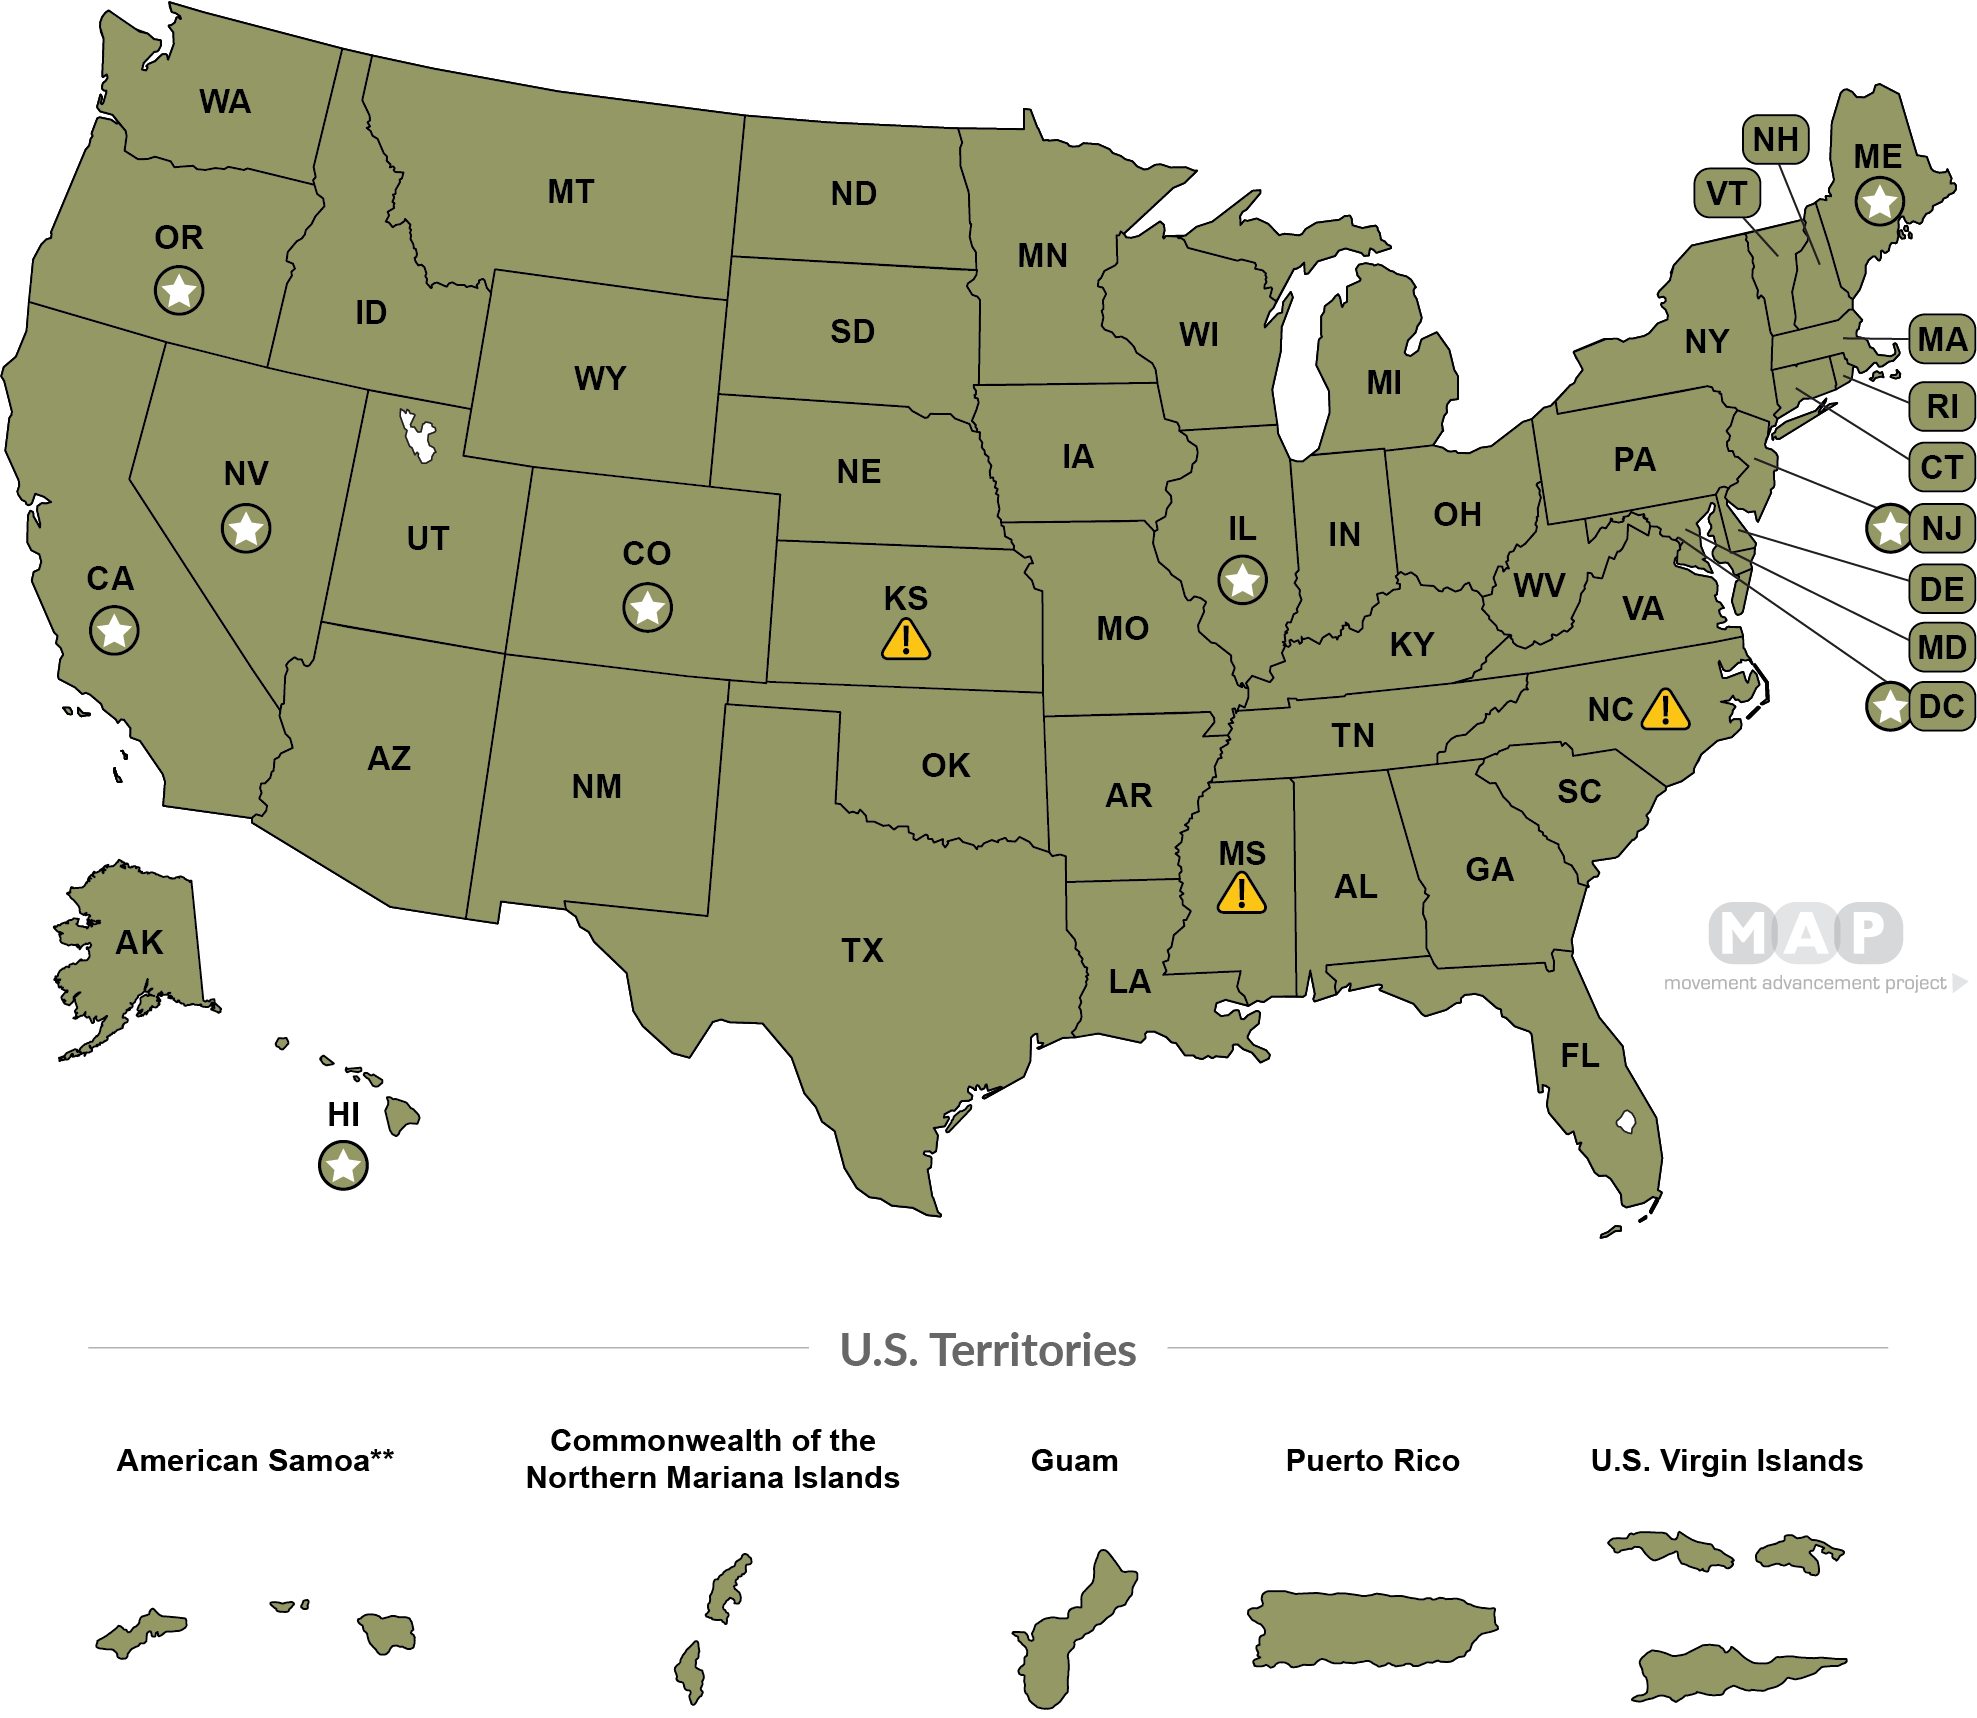 Gay Marriage States Map Movement Advancement Project | Marriage & Relationship Recognition  Gay Marriage States Map